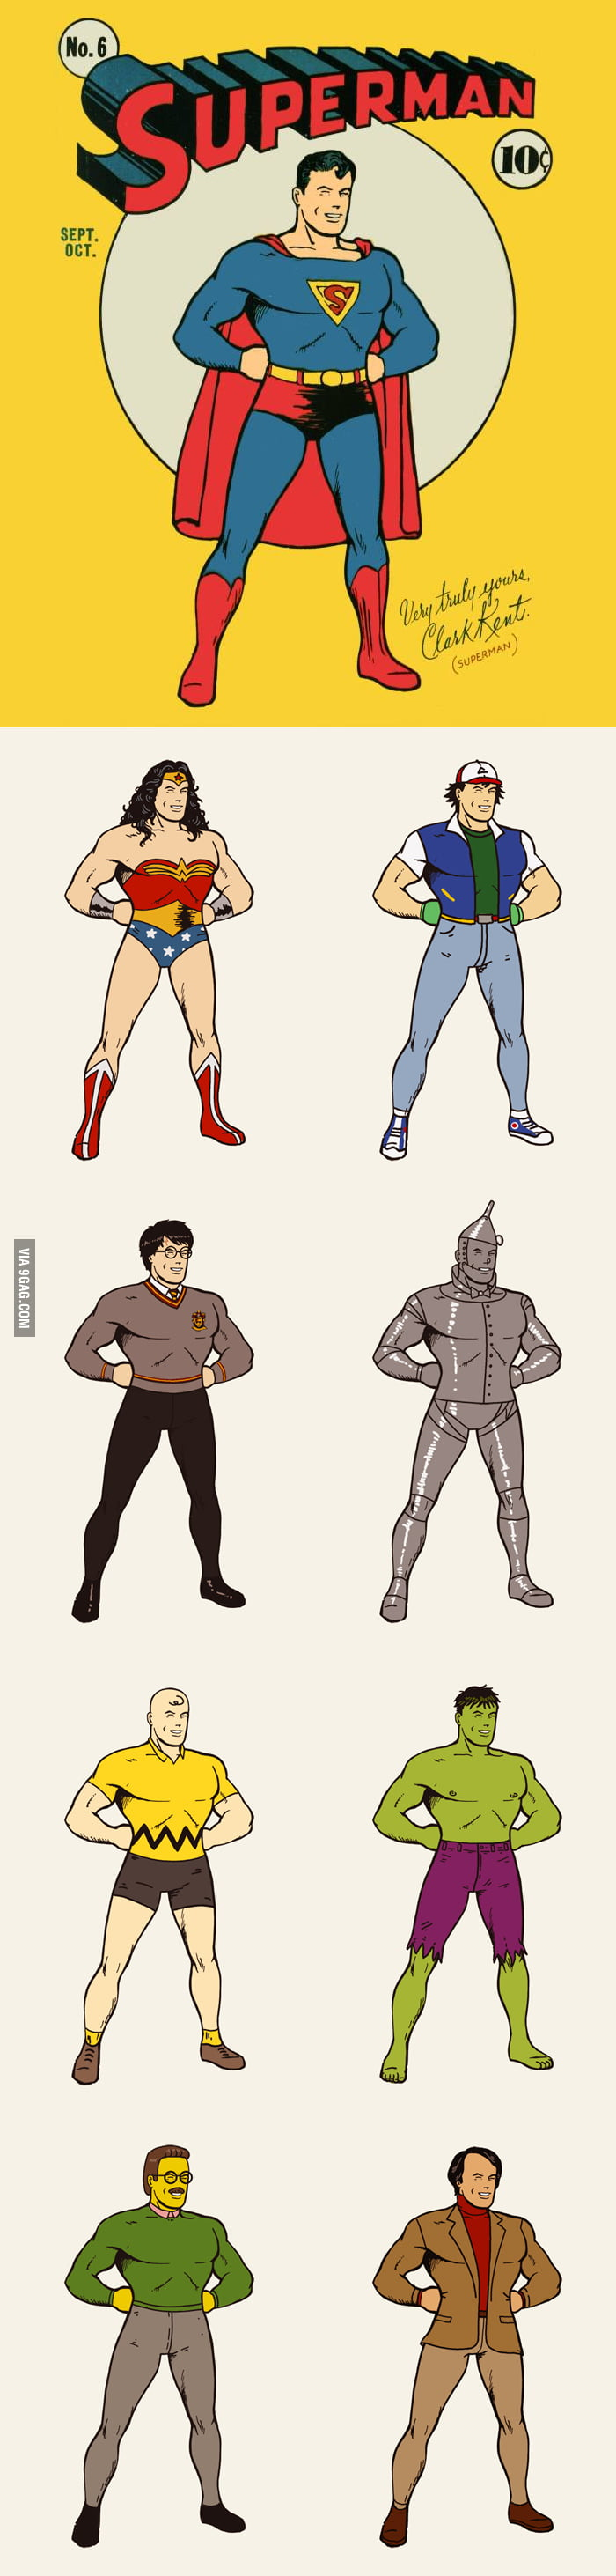 Superman in different costumes